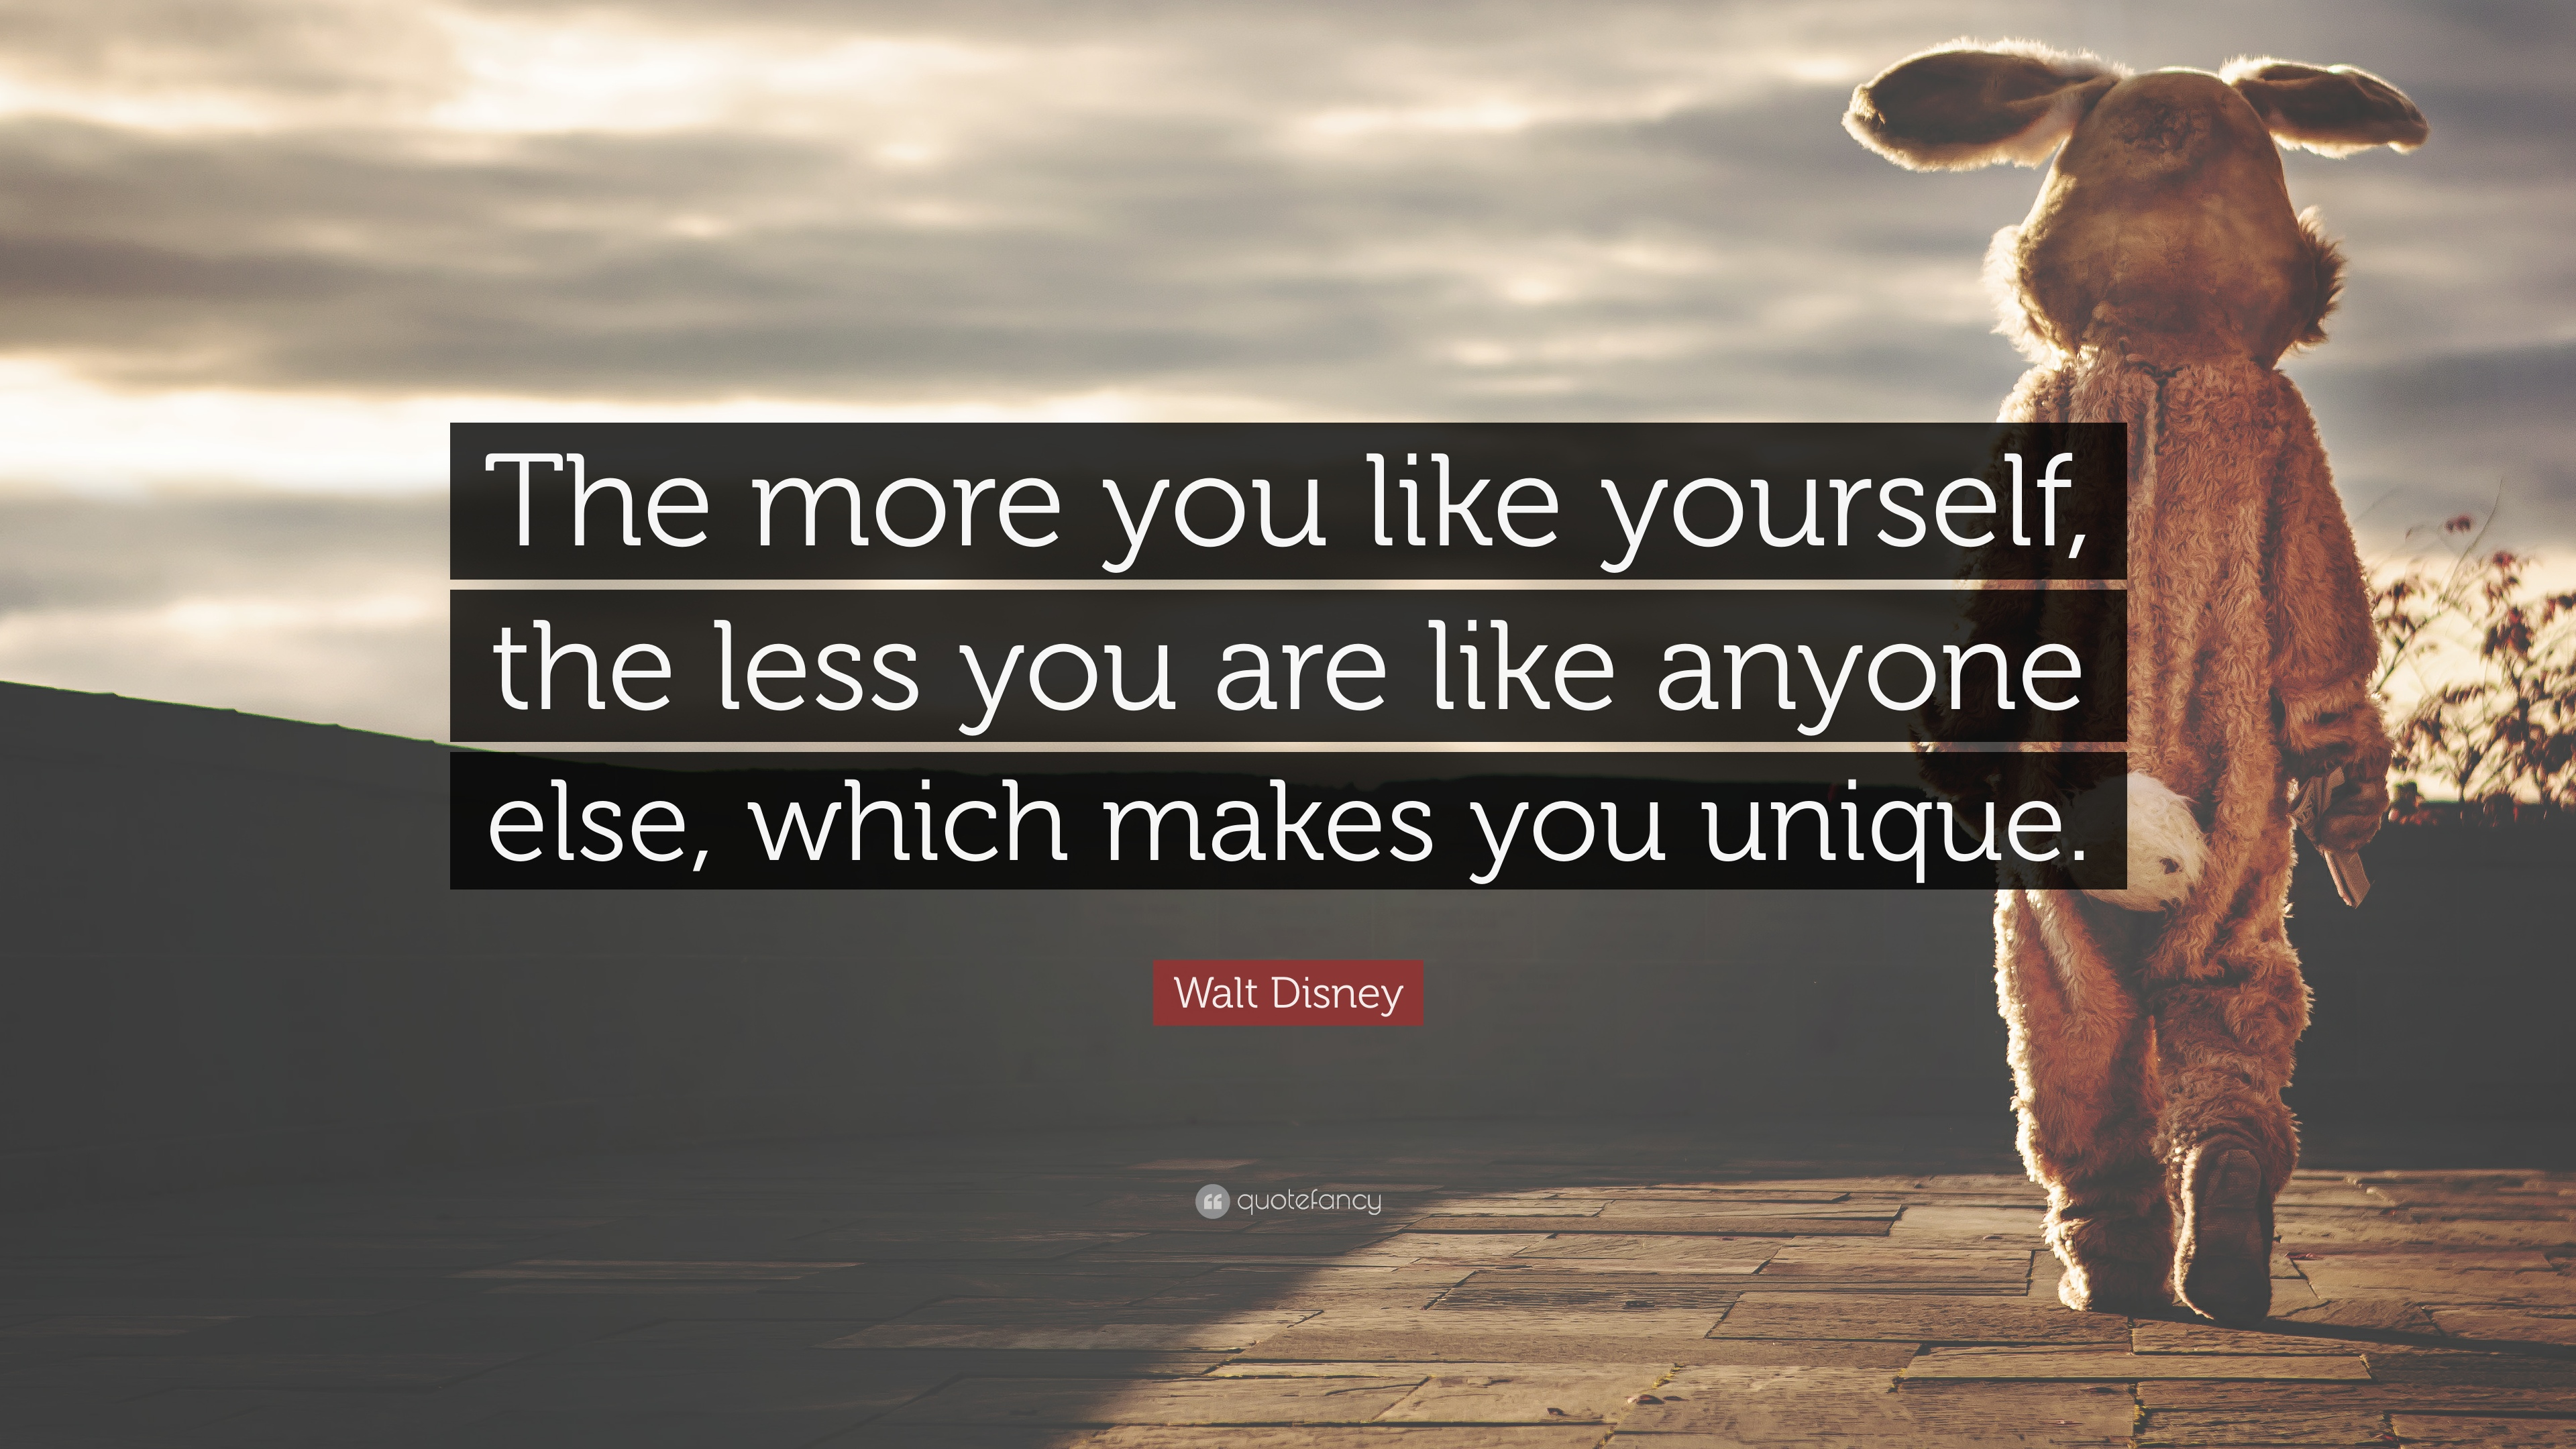 Walt Disney Quote: U201cThe More You Like Yourself, The Less You Are Like